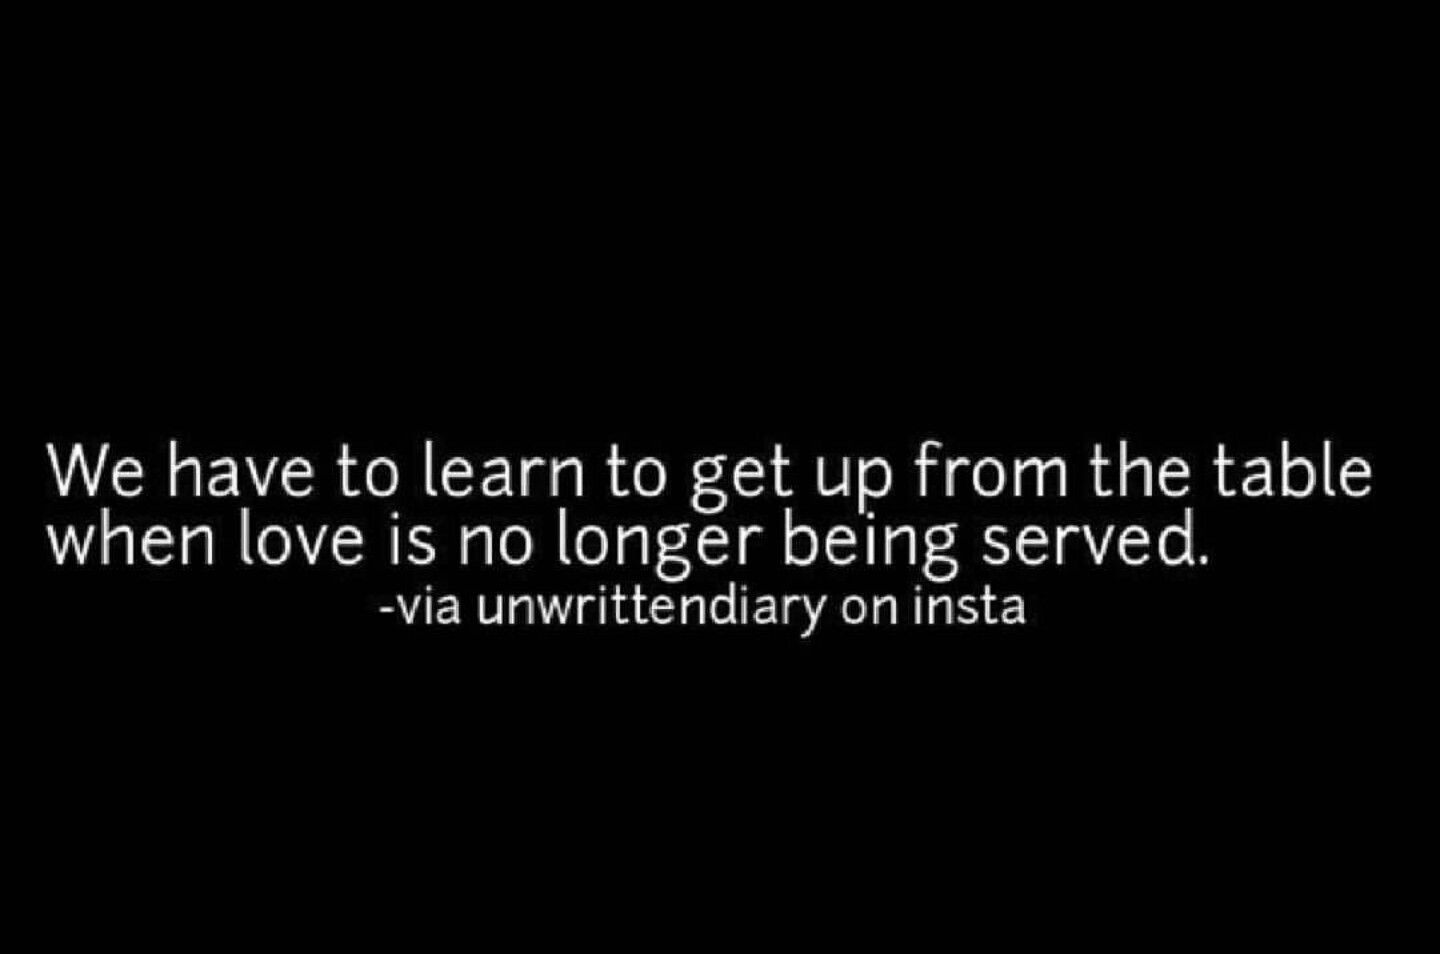 #love use to be!